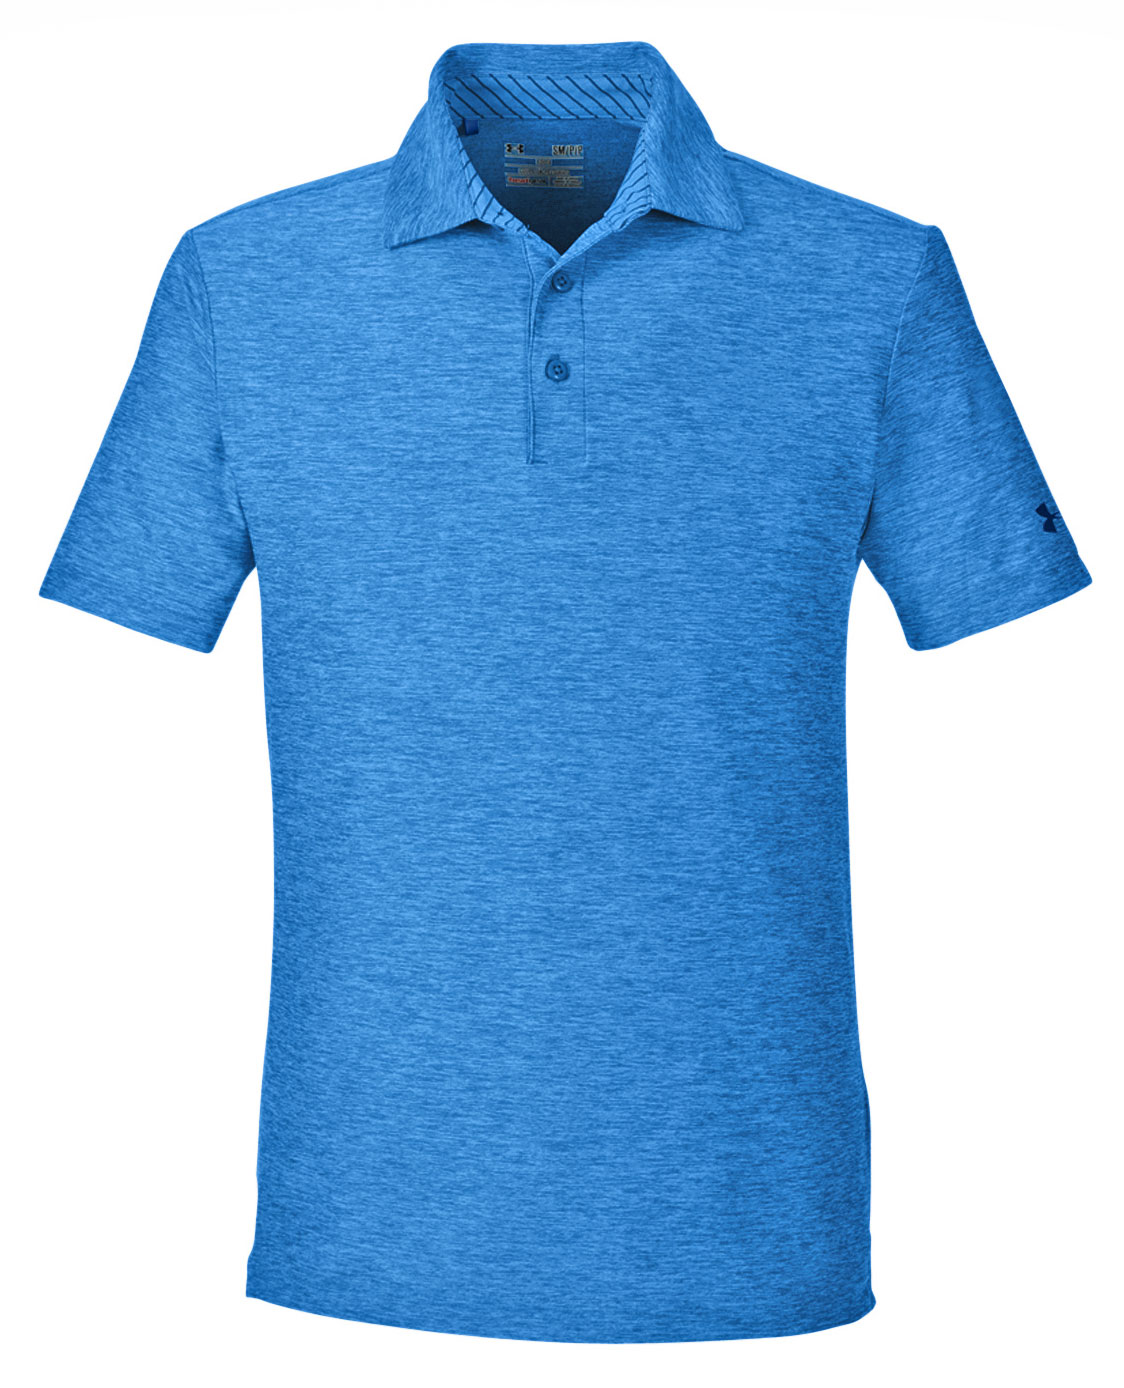 under armour men's polo shirts